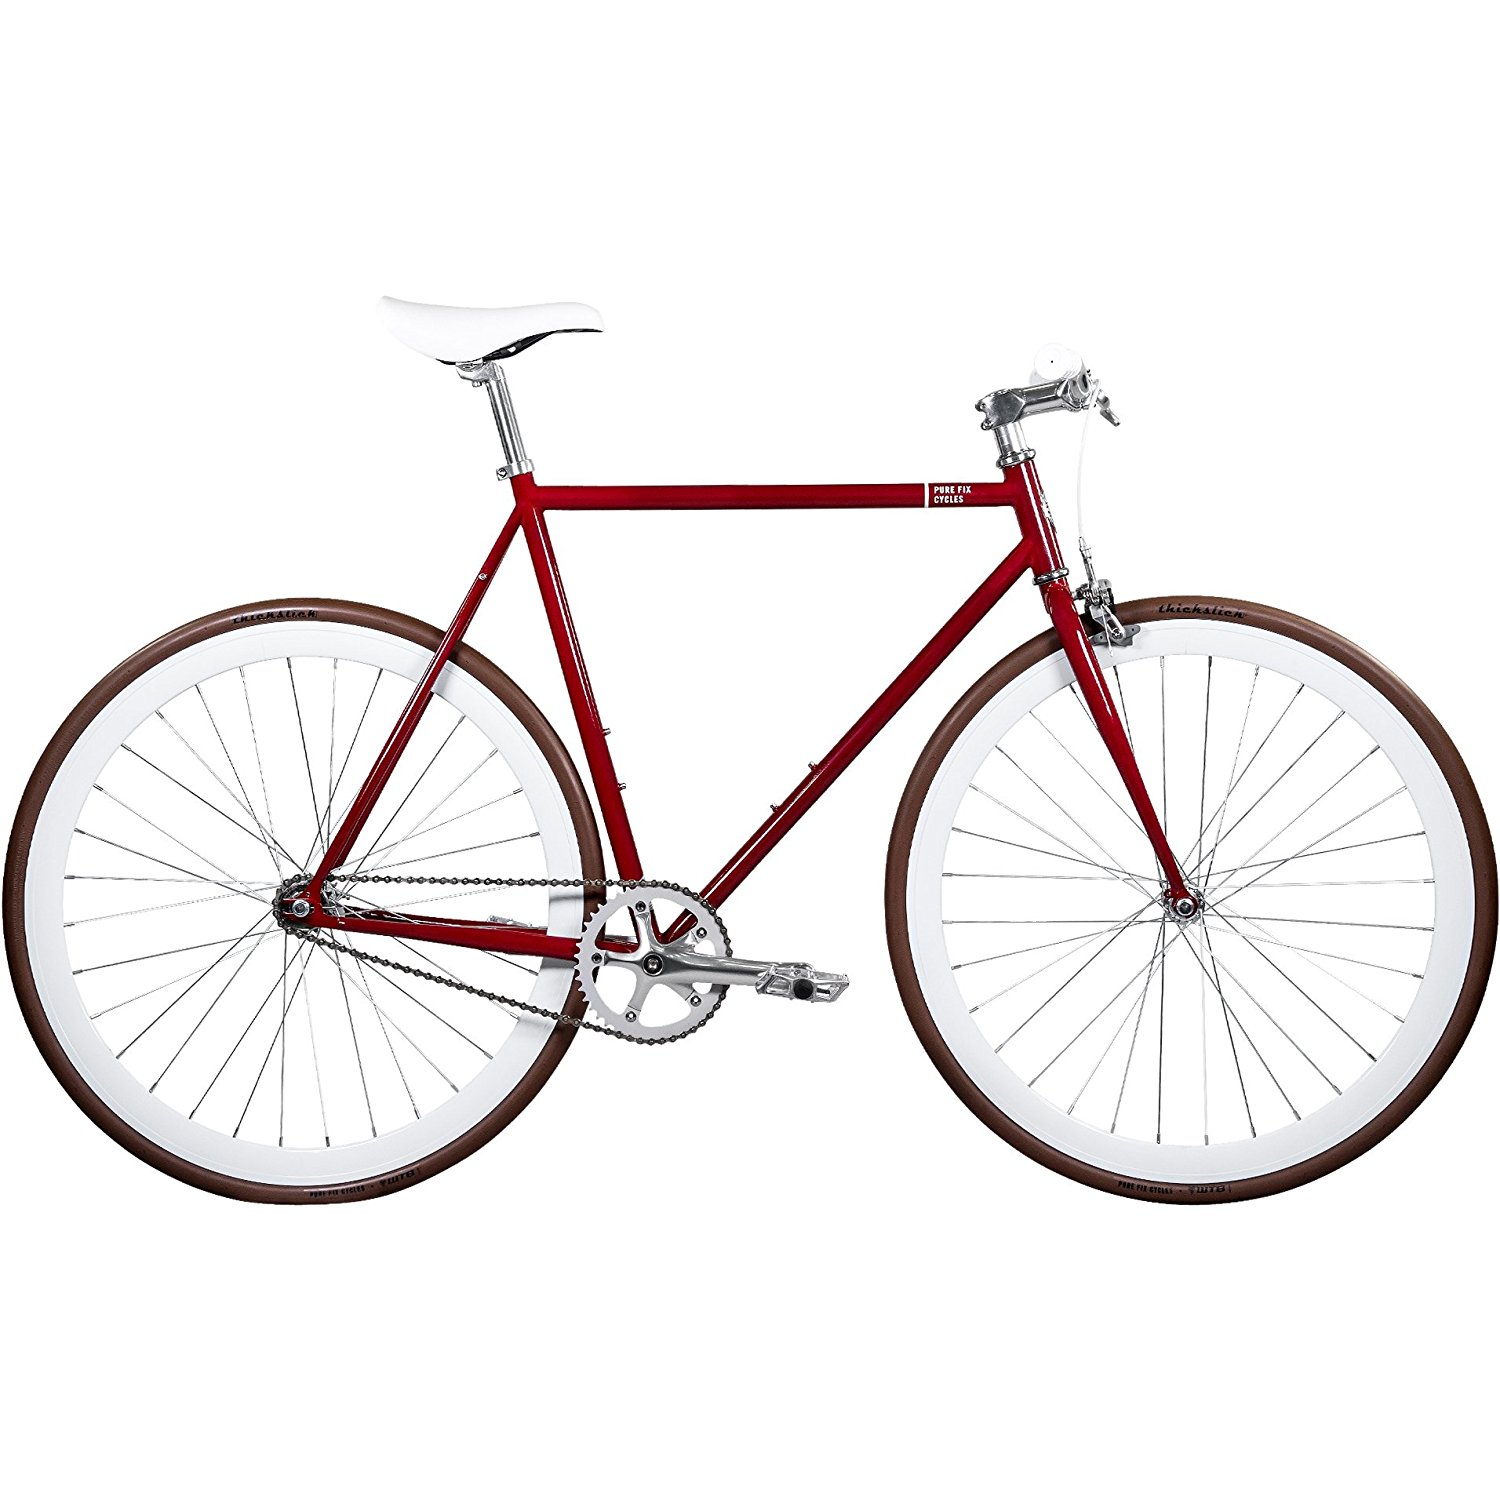 Best Fixed Gear Bikes | Best Single Speed Bikes - The Bicycles Guide